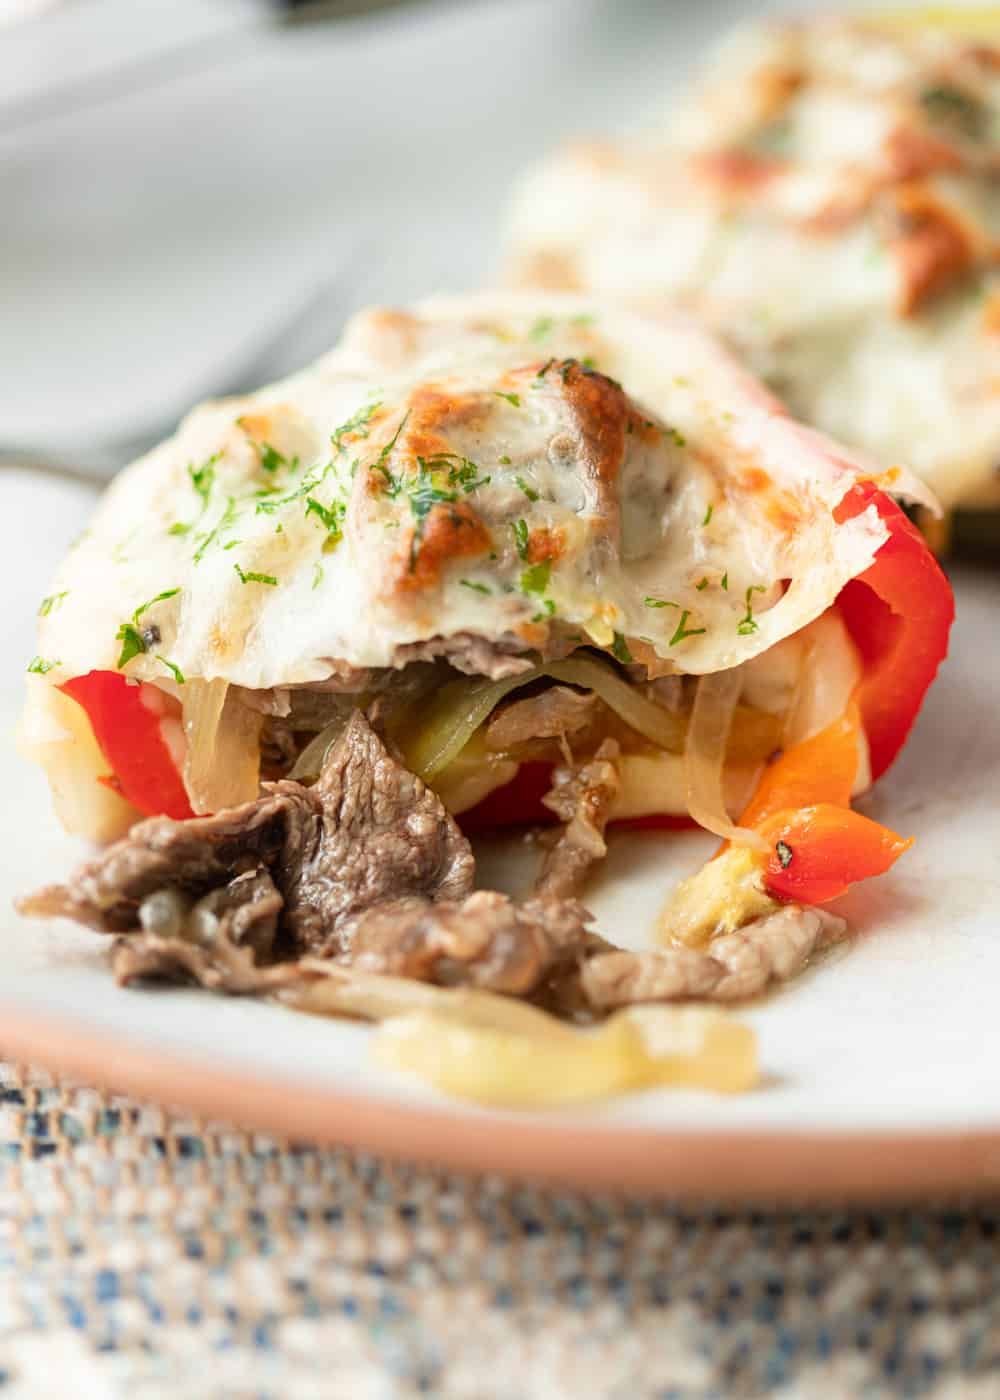 sliced pepper with melted cheese and steak filling